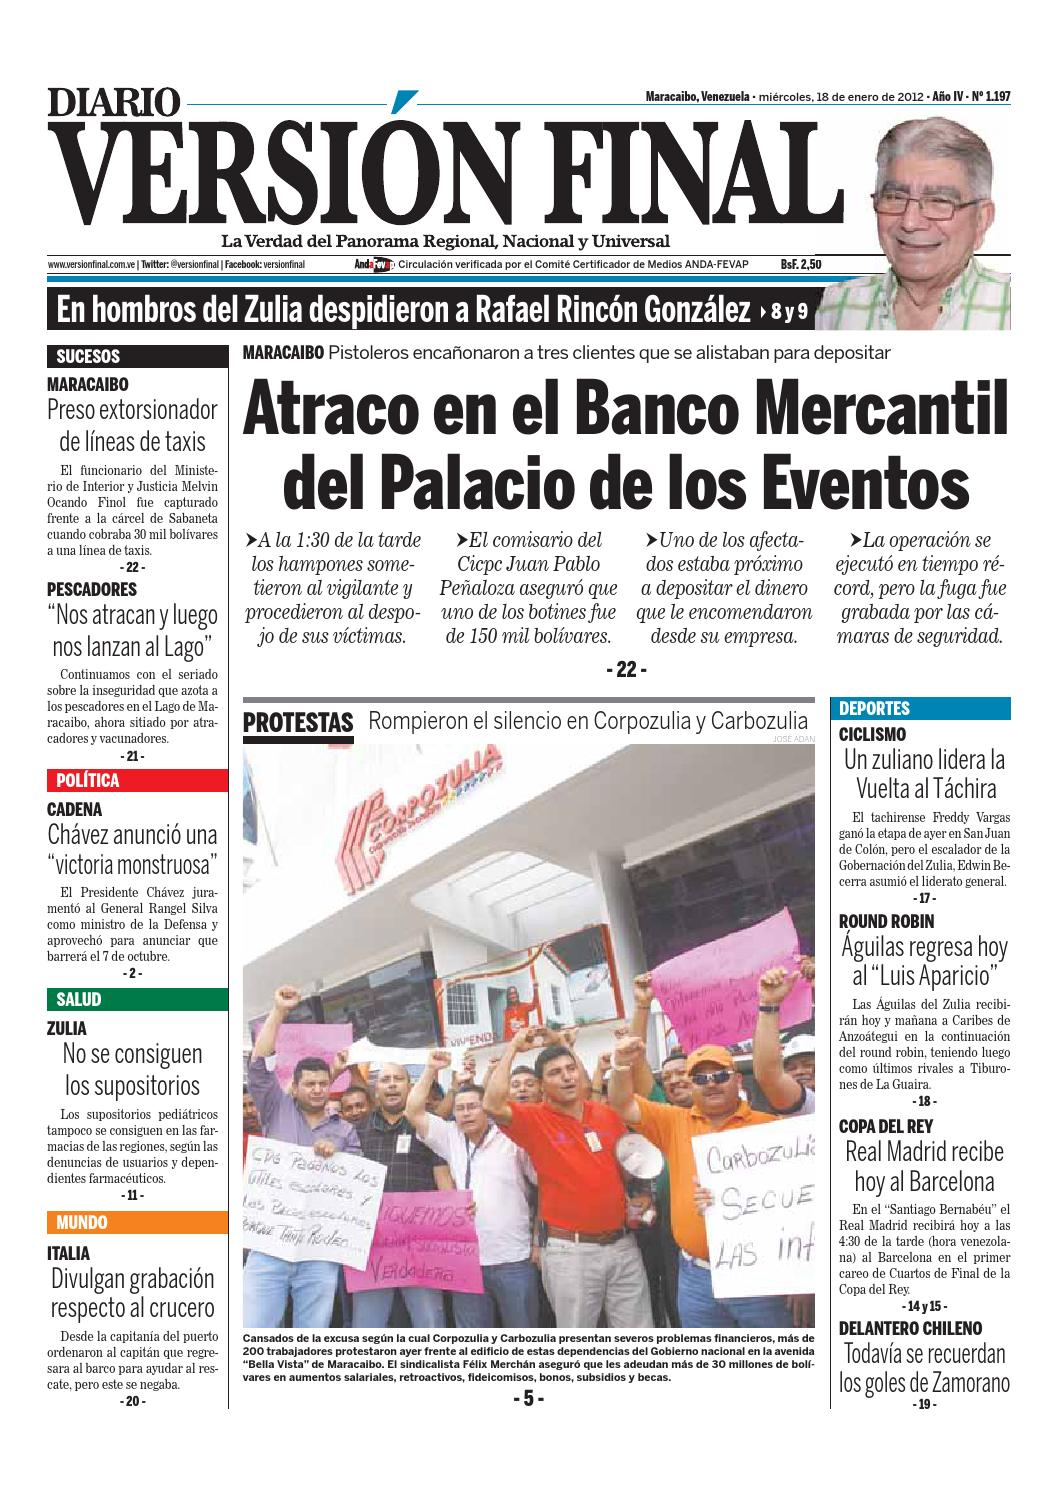 Diario versi n final by diario versi n final issuu for Logo del ministerio de interior y justicia